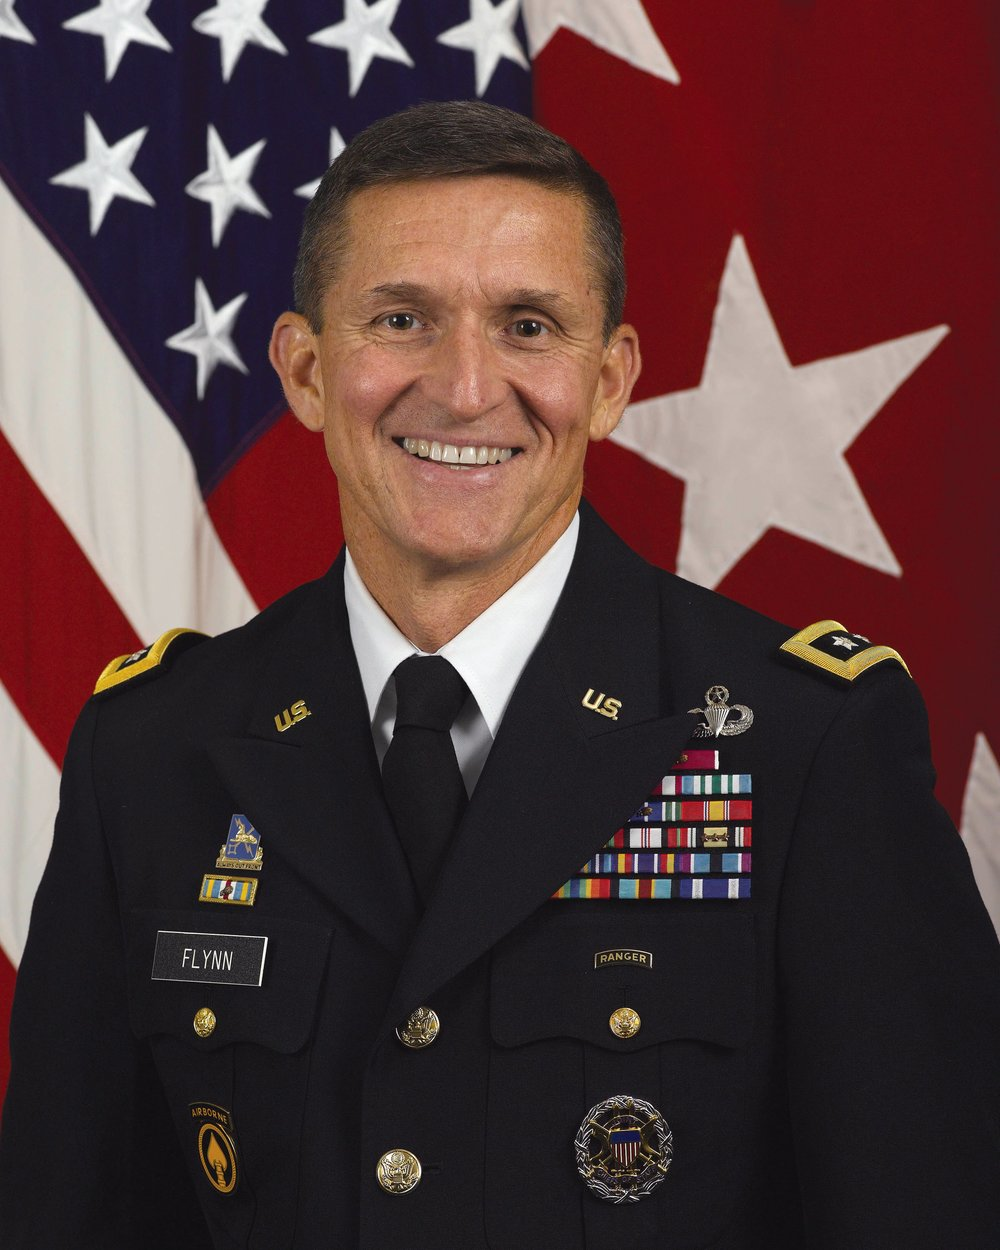 General Flynn, National Security Adviser.